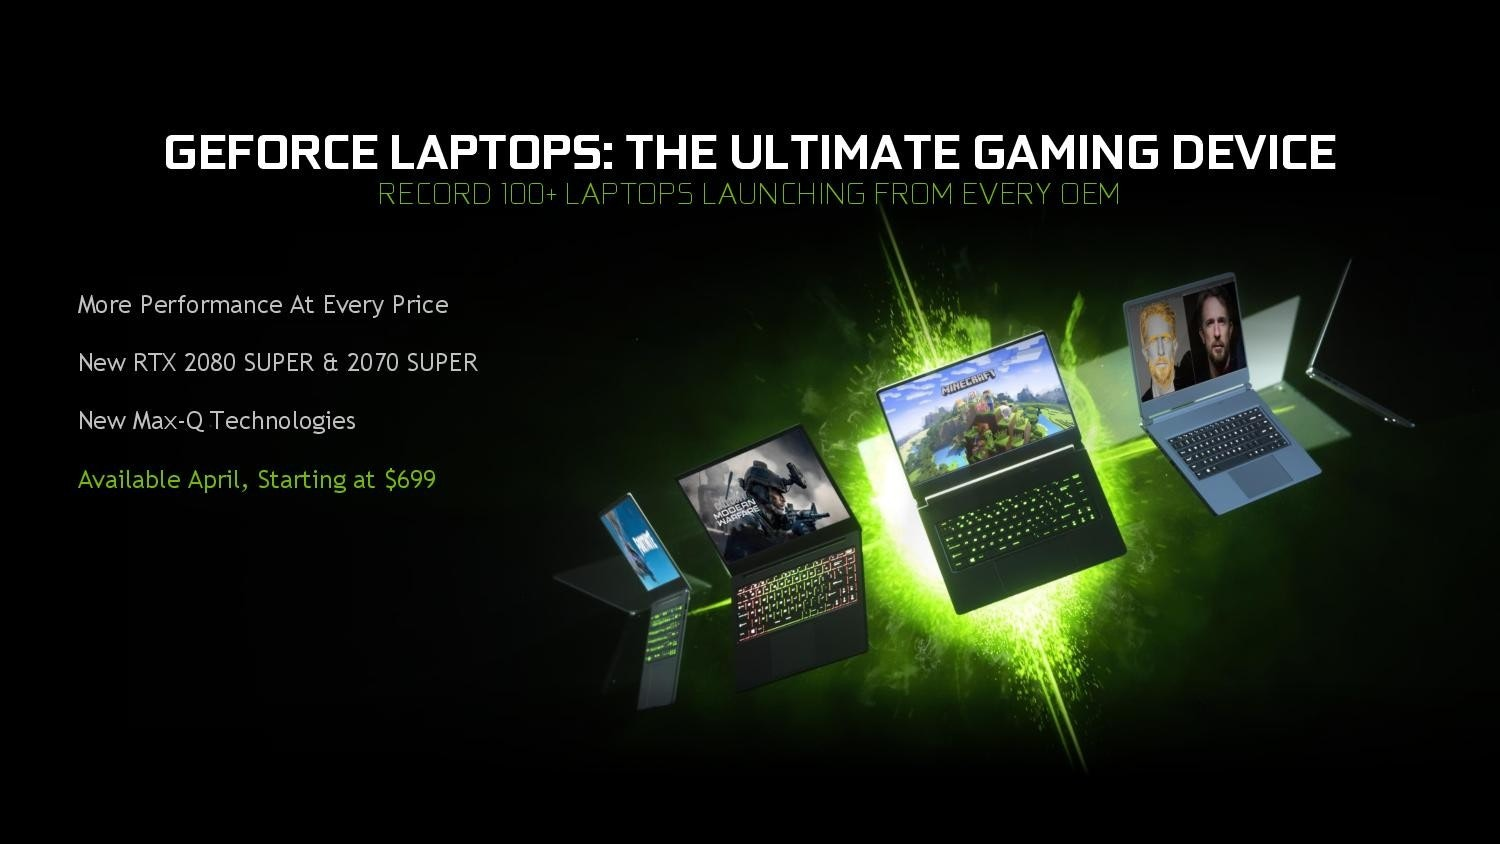 照片中提到了GEFORCE LAPTOPS: THE ULTIMATE GAMING DEVICE、RECORD 100+ LAPTOPS LAUNCHING FROM EVERY OEM、More Performance At Every Price,包含了多媒體、筆記本電腦、GeForce、圖形、電腦